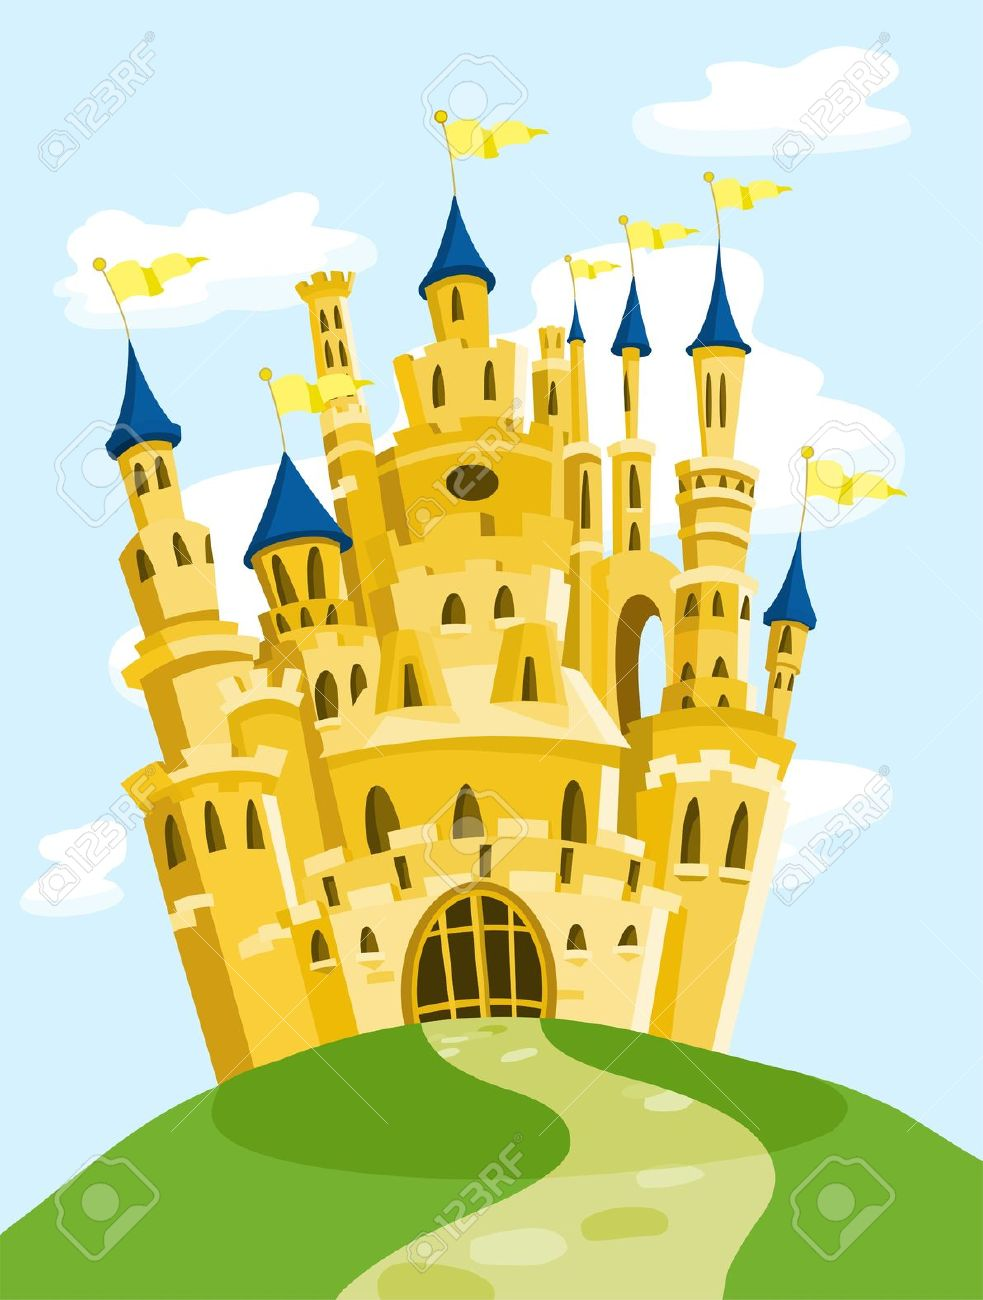 Magic Castle Royalty Free Cliparts, Vectors, And Stock.